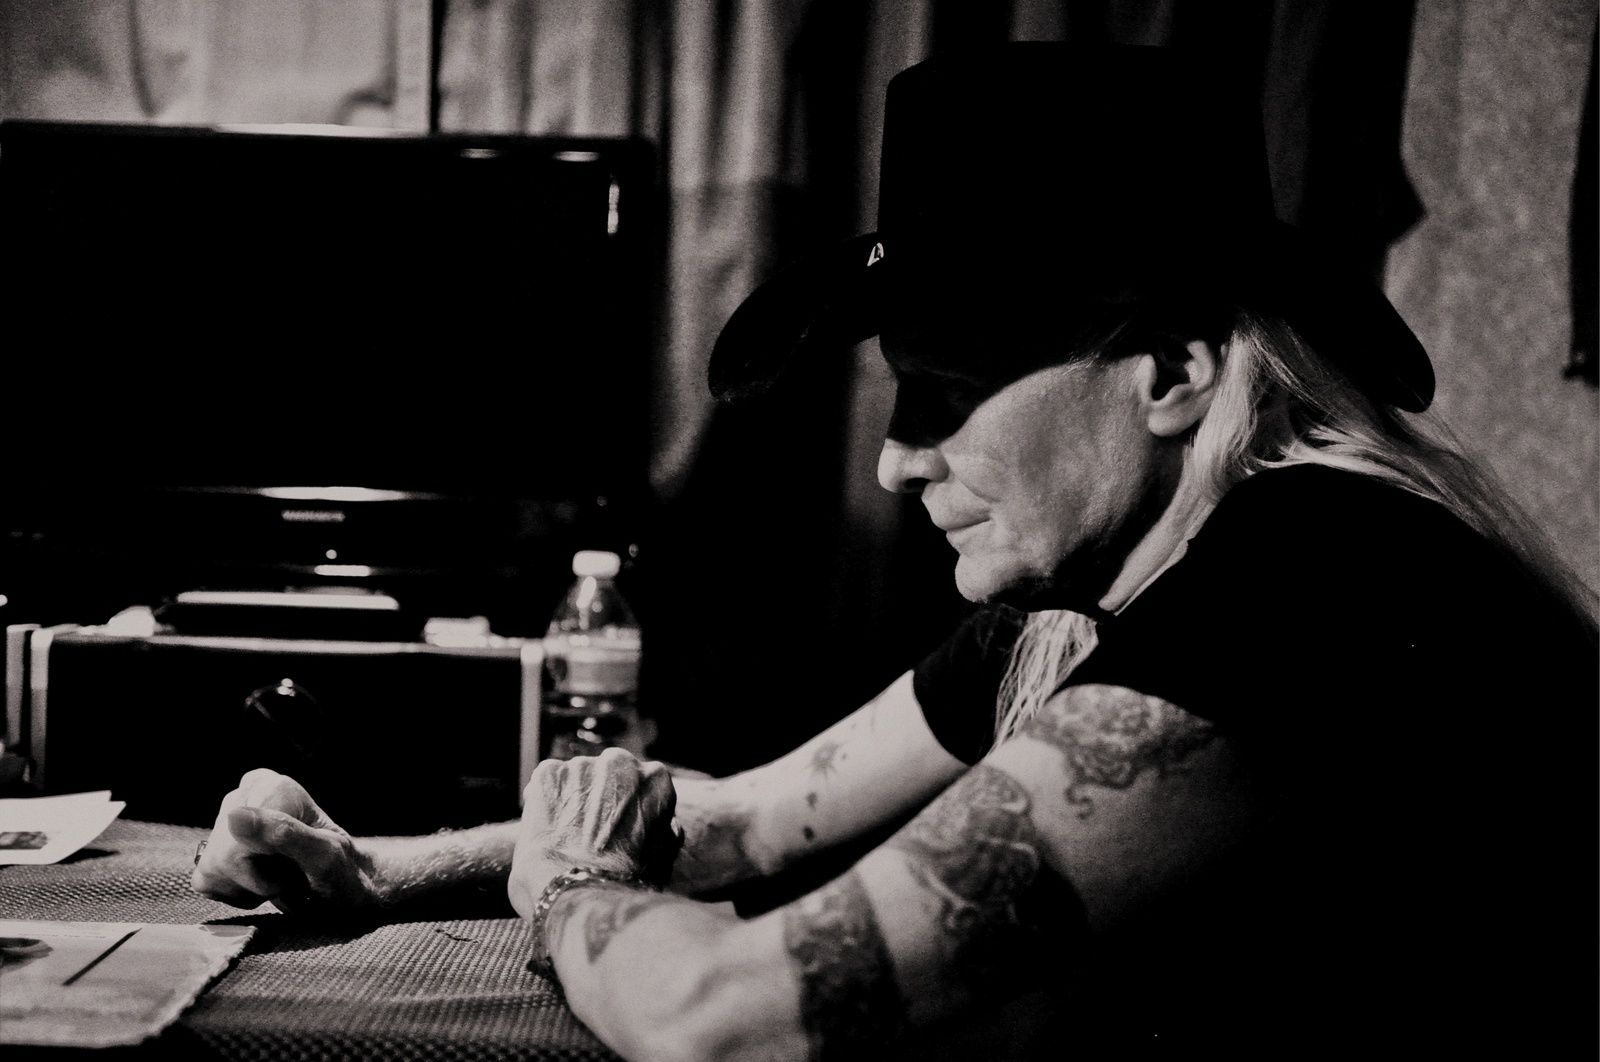 Johnny Winter Dies at 70